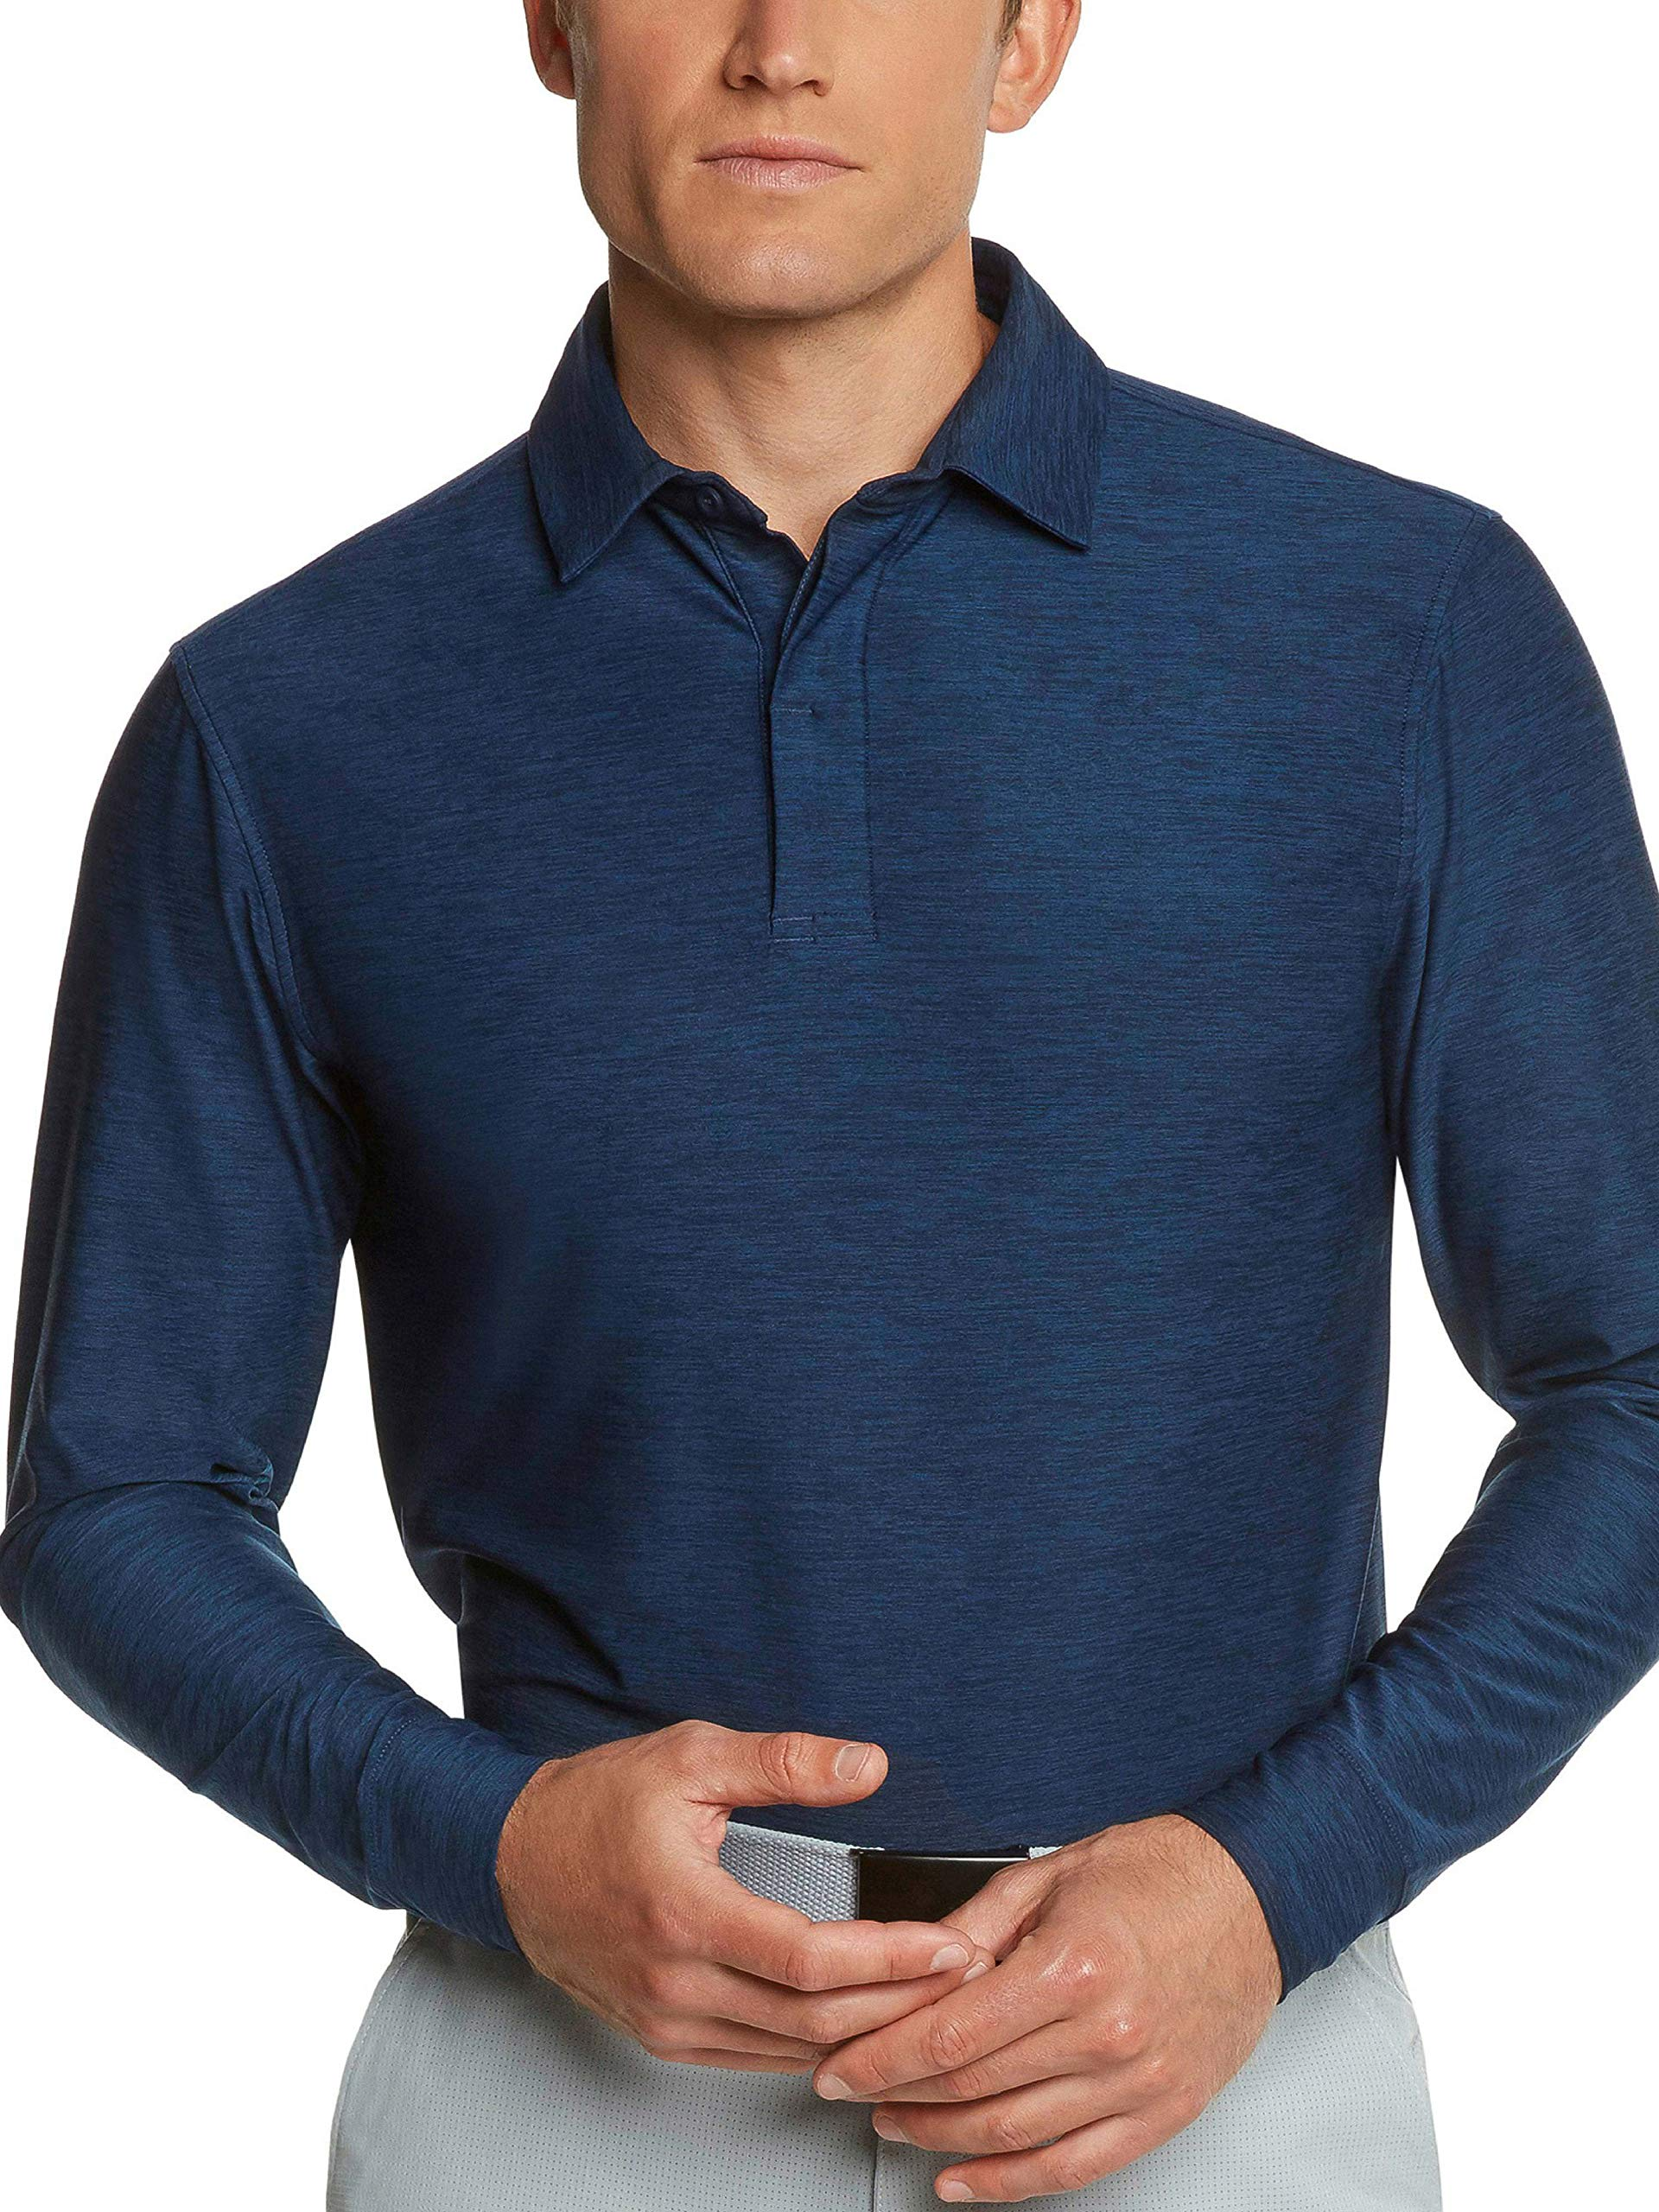 Best Rated In Mens Golf Shirts Helpful Customer Reviews Amazon